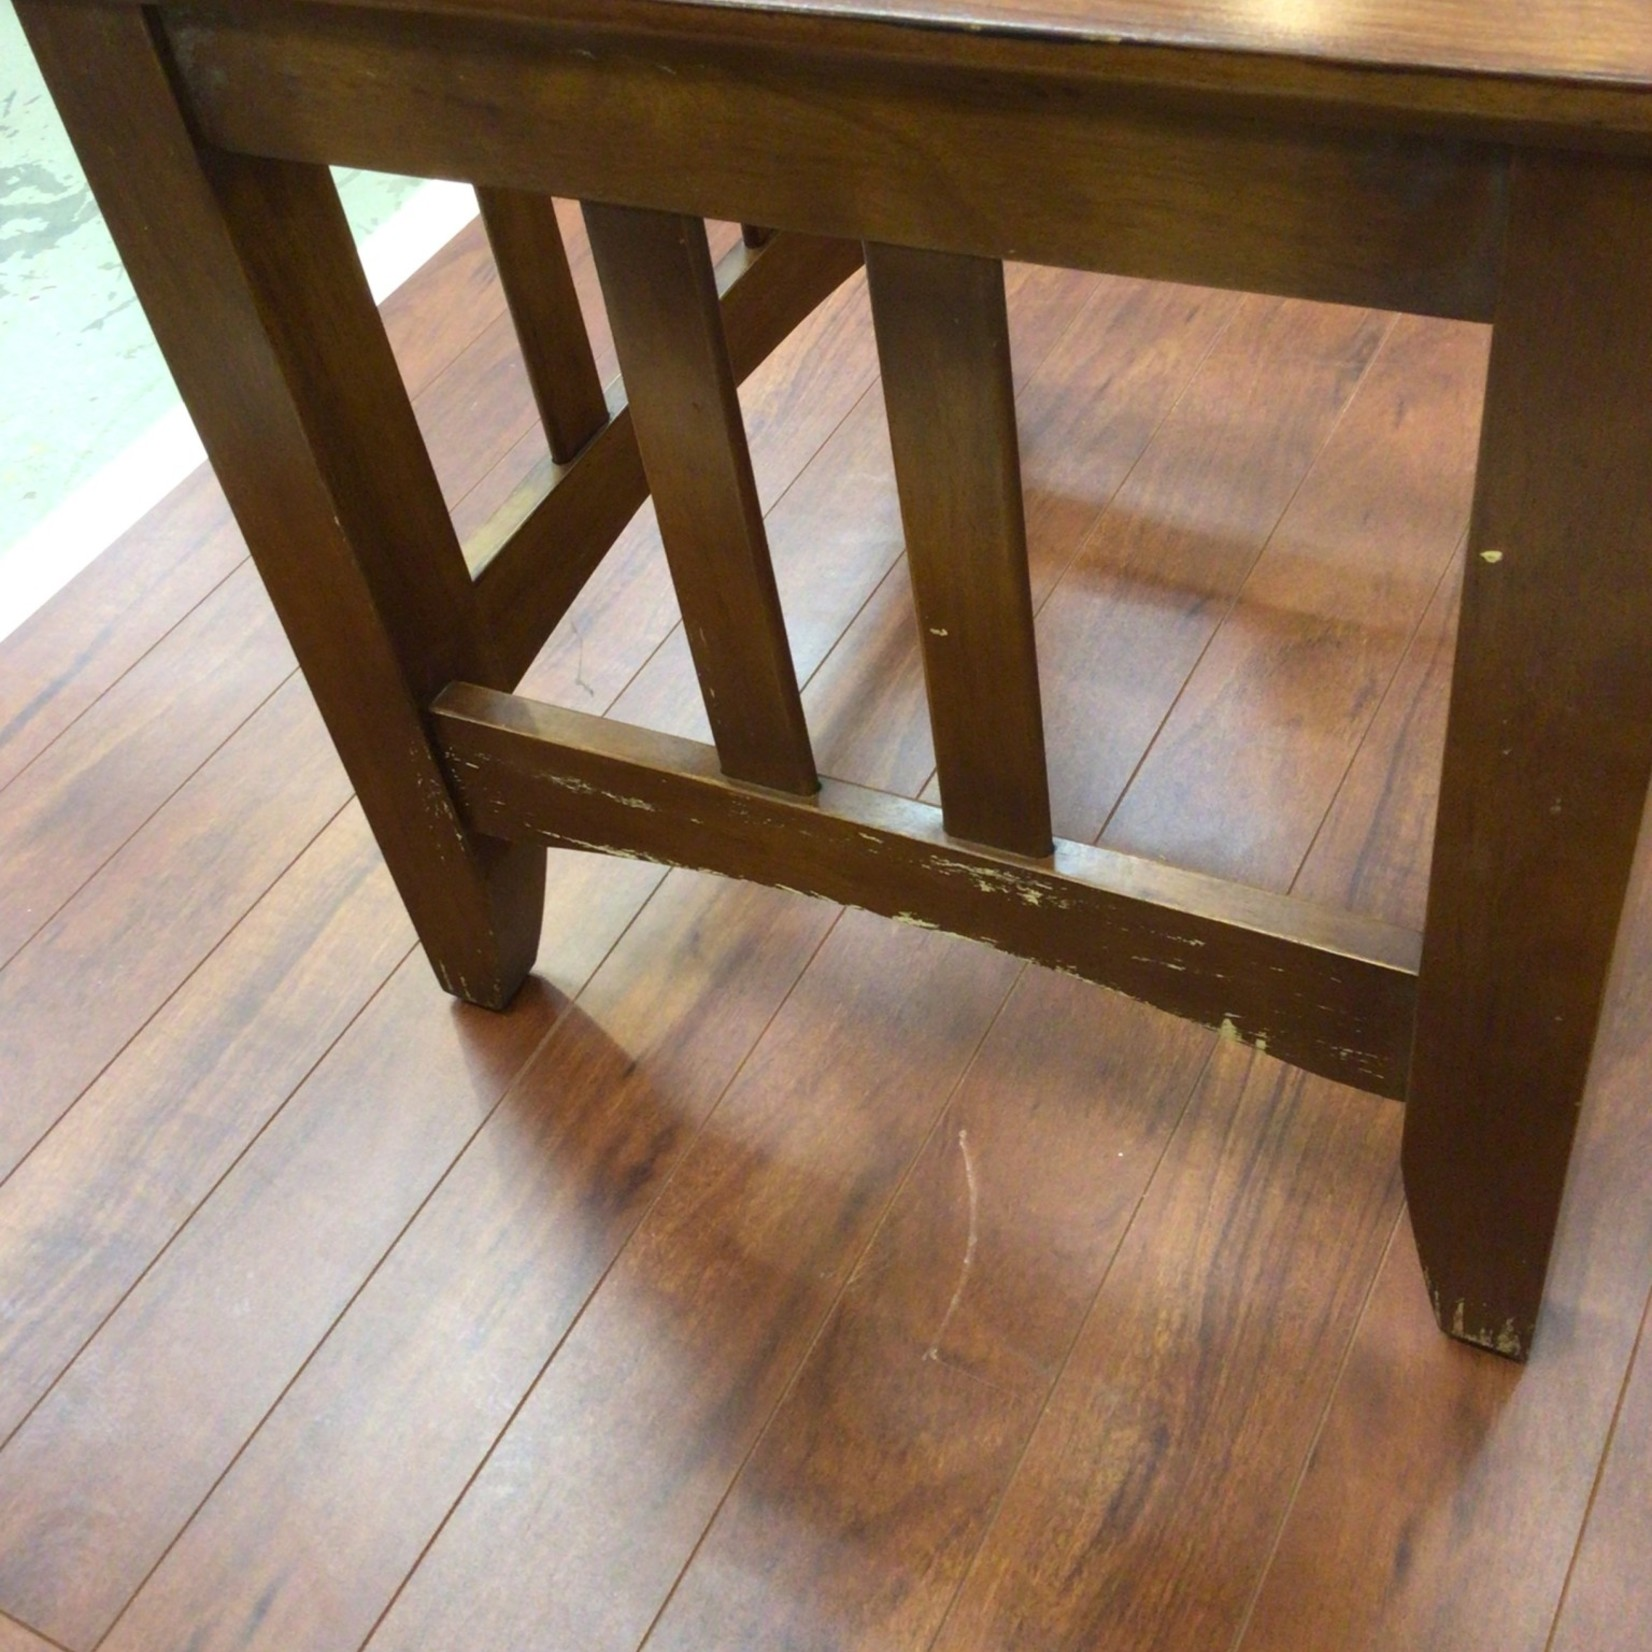 Night Stand with glass on top